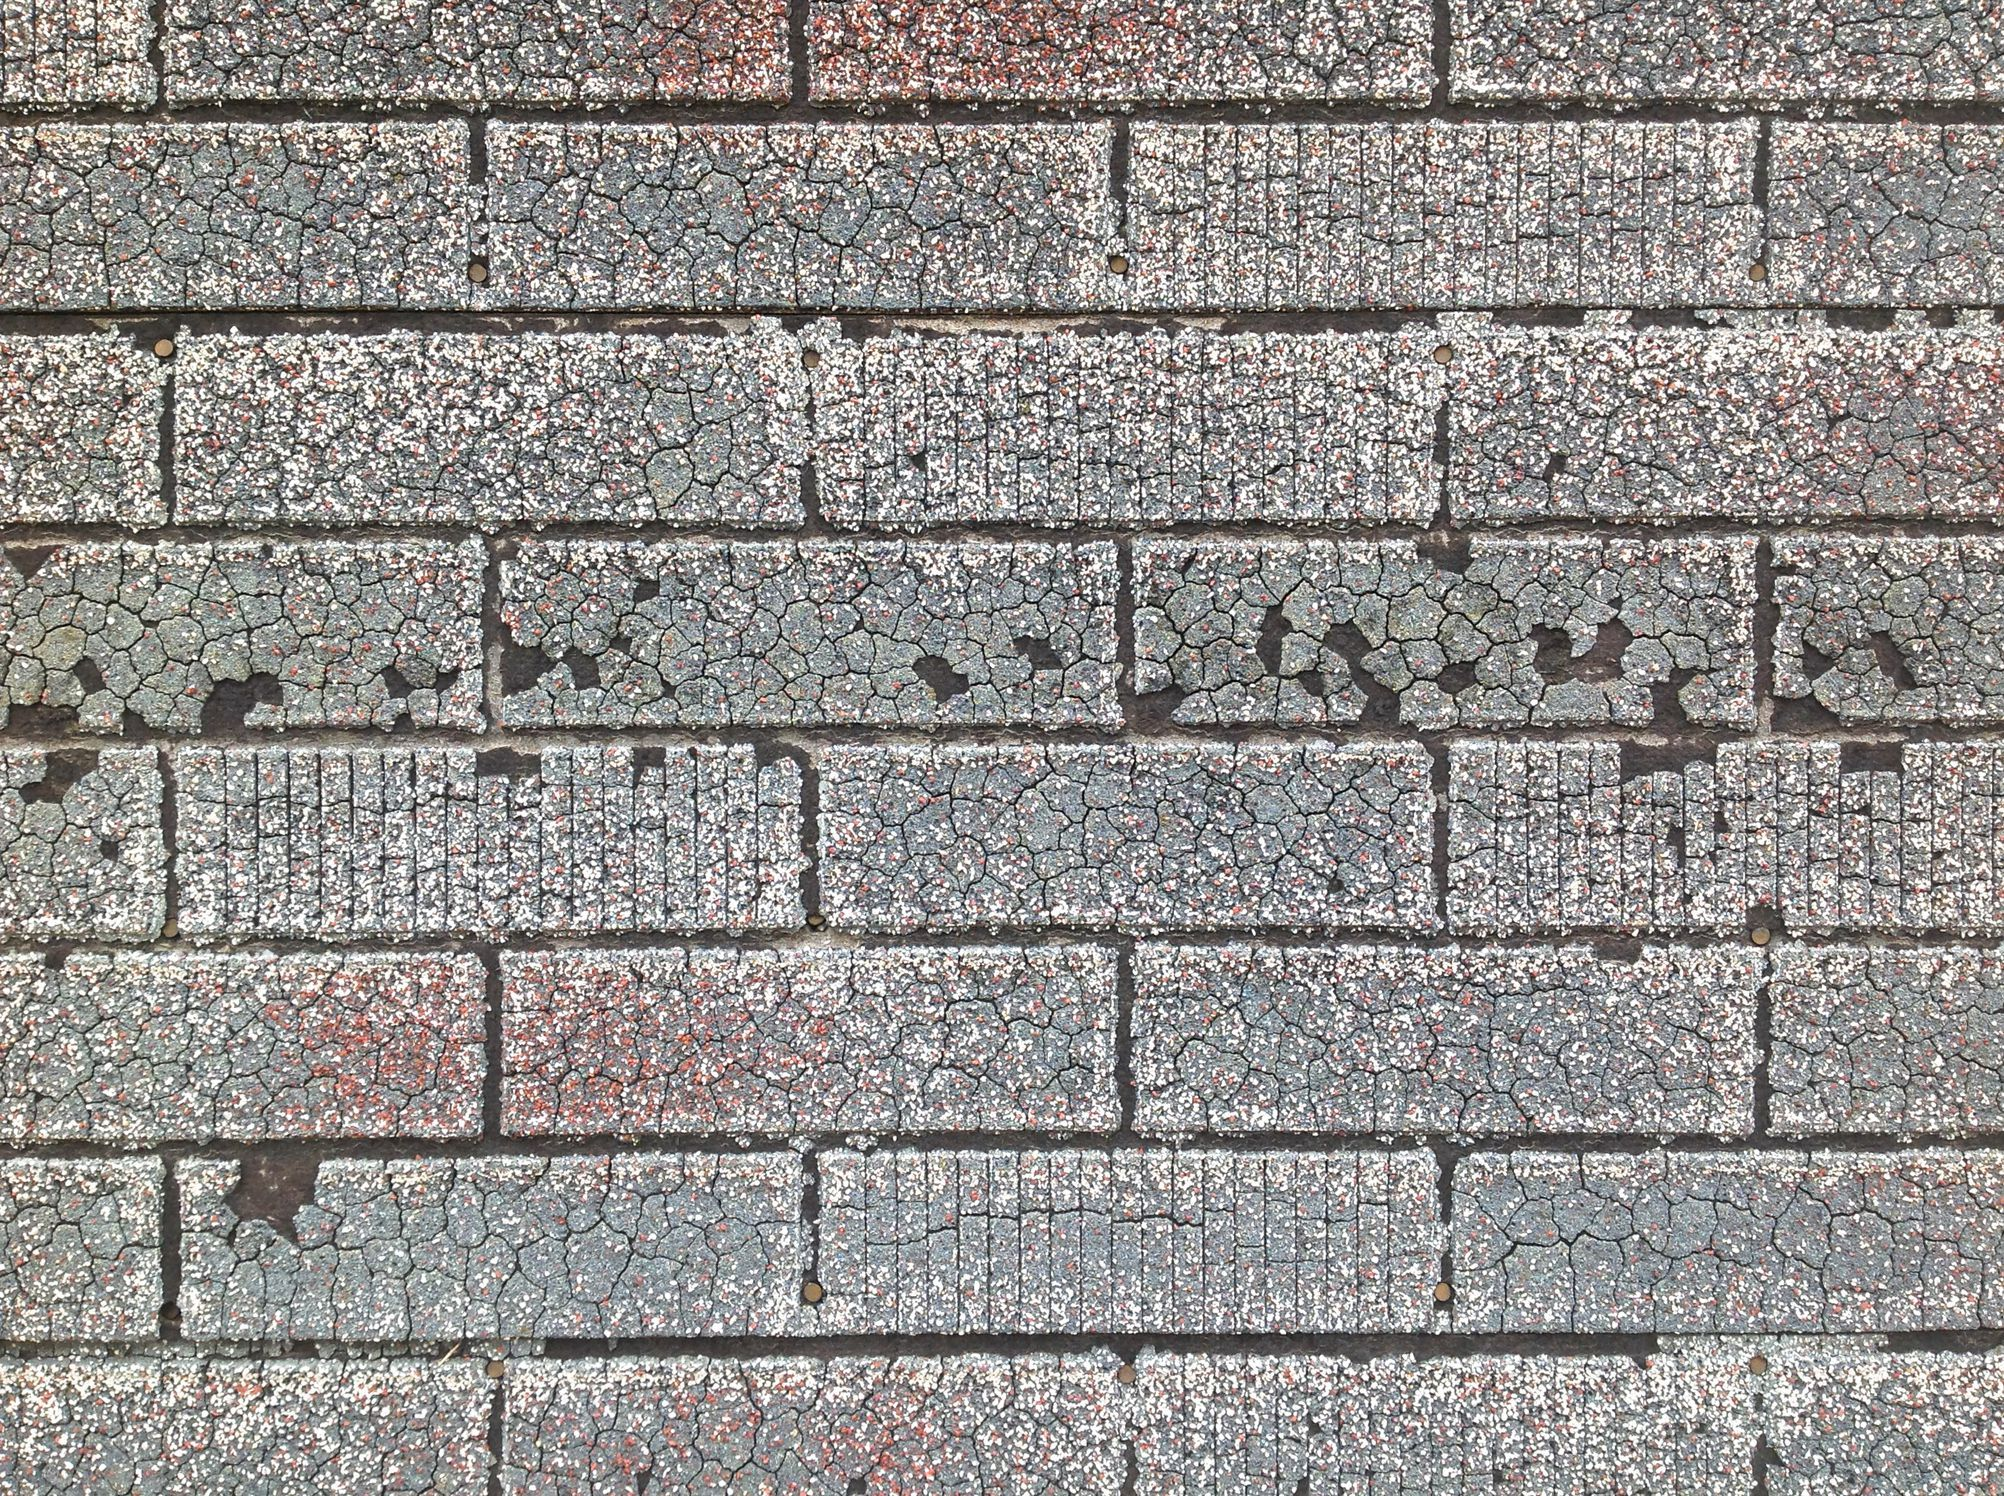 What You Should Know About Asbestos Cement Siding Asbestos Siding Cement Siding Siding